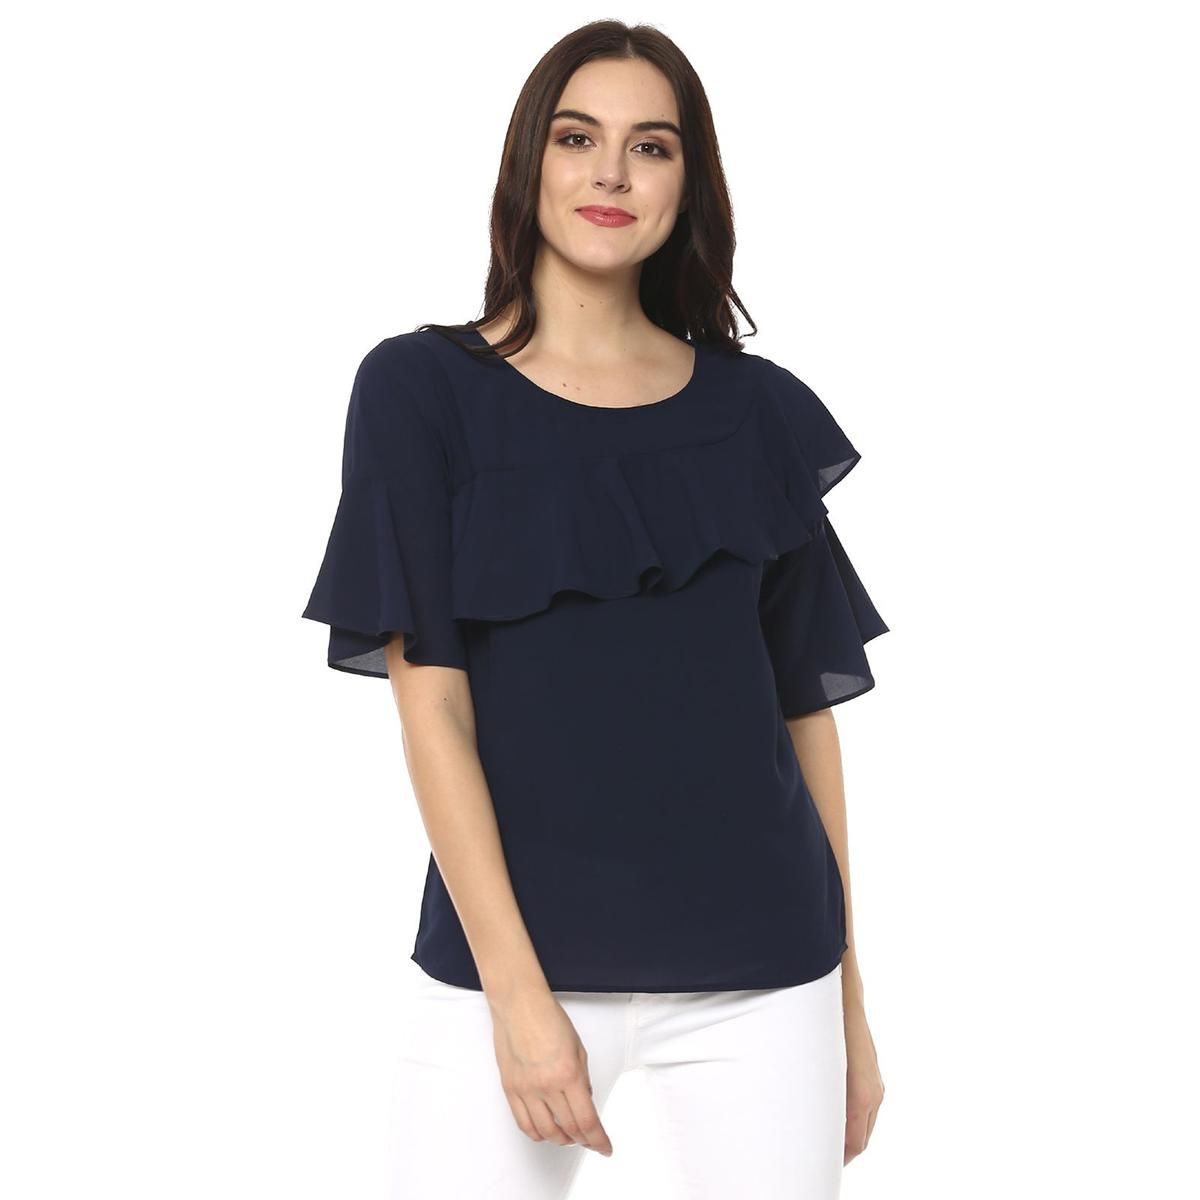 Sensational Navy Blue Colored Casual Wear Polyester Top